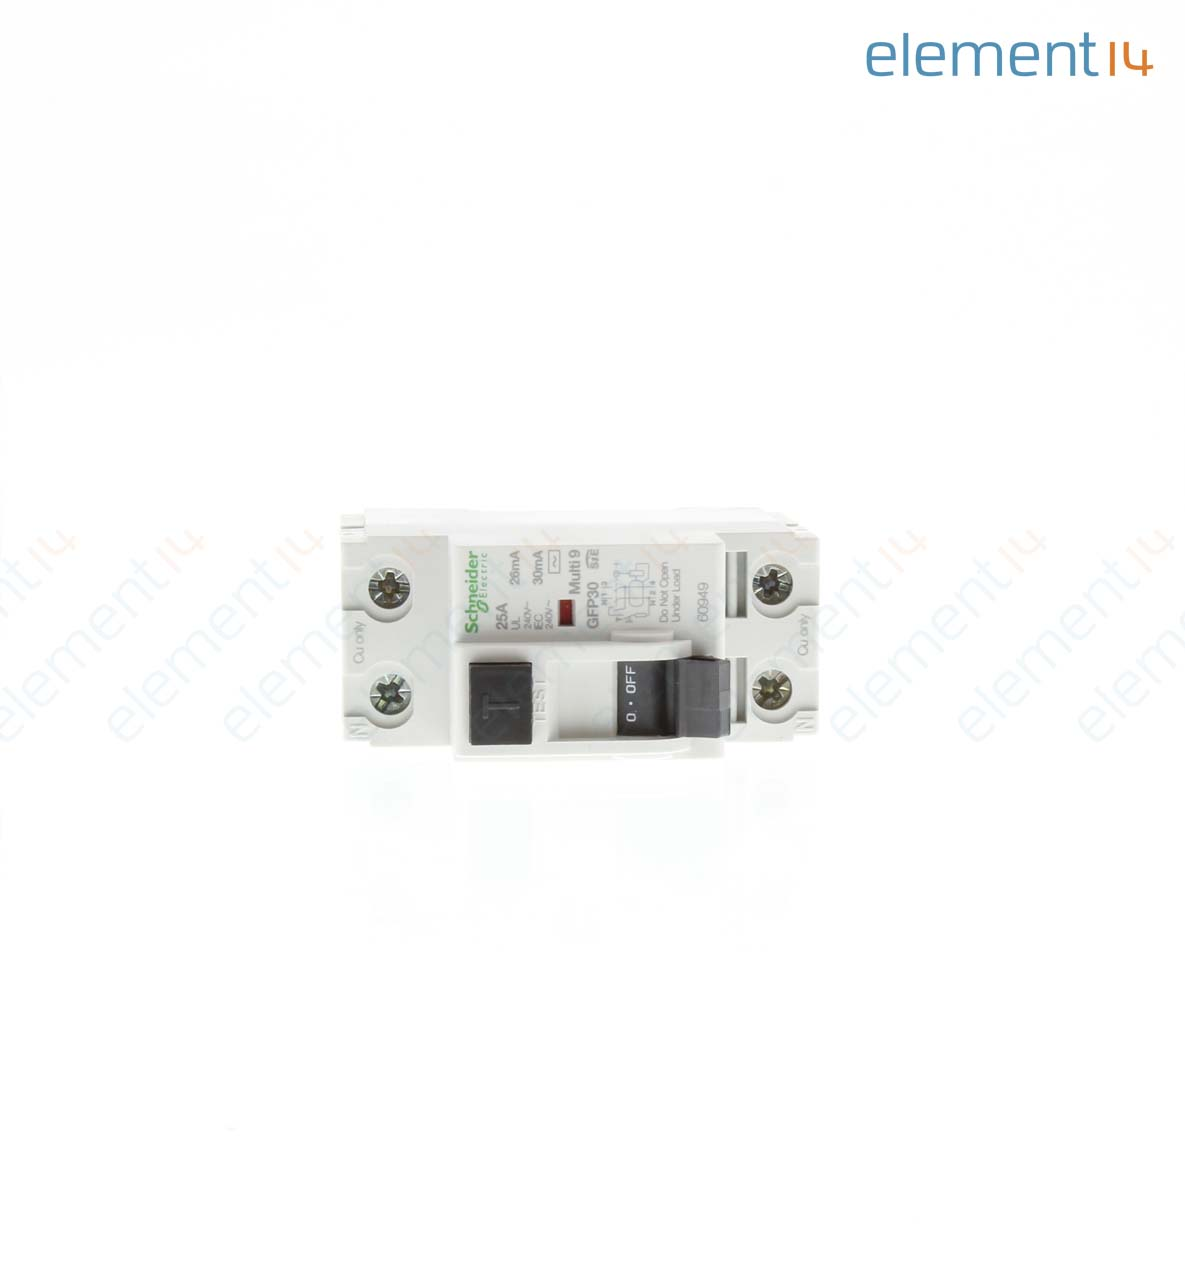 60949 Schneider Electric Circuit Breaker Accessory Electronics Manufacturerelectro Plate Circuitry Dragon Circuits